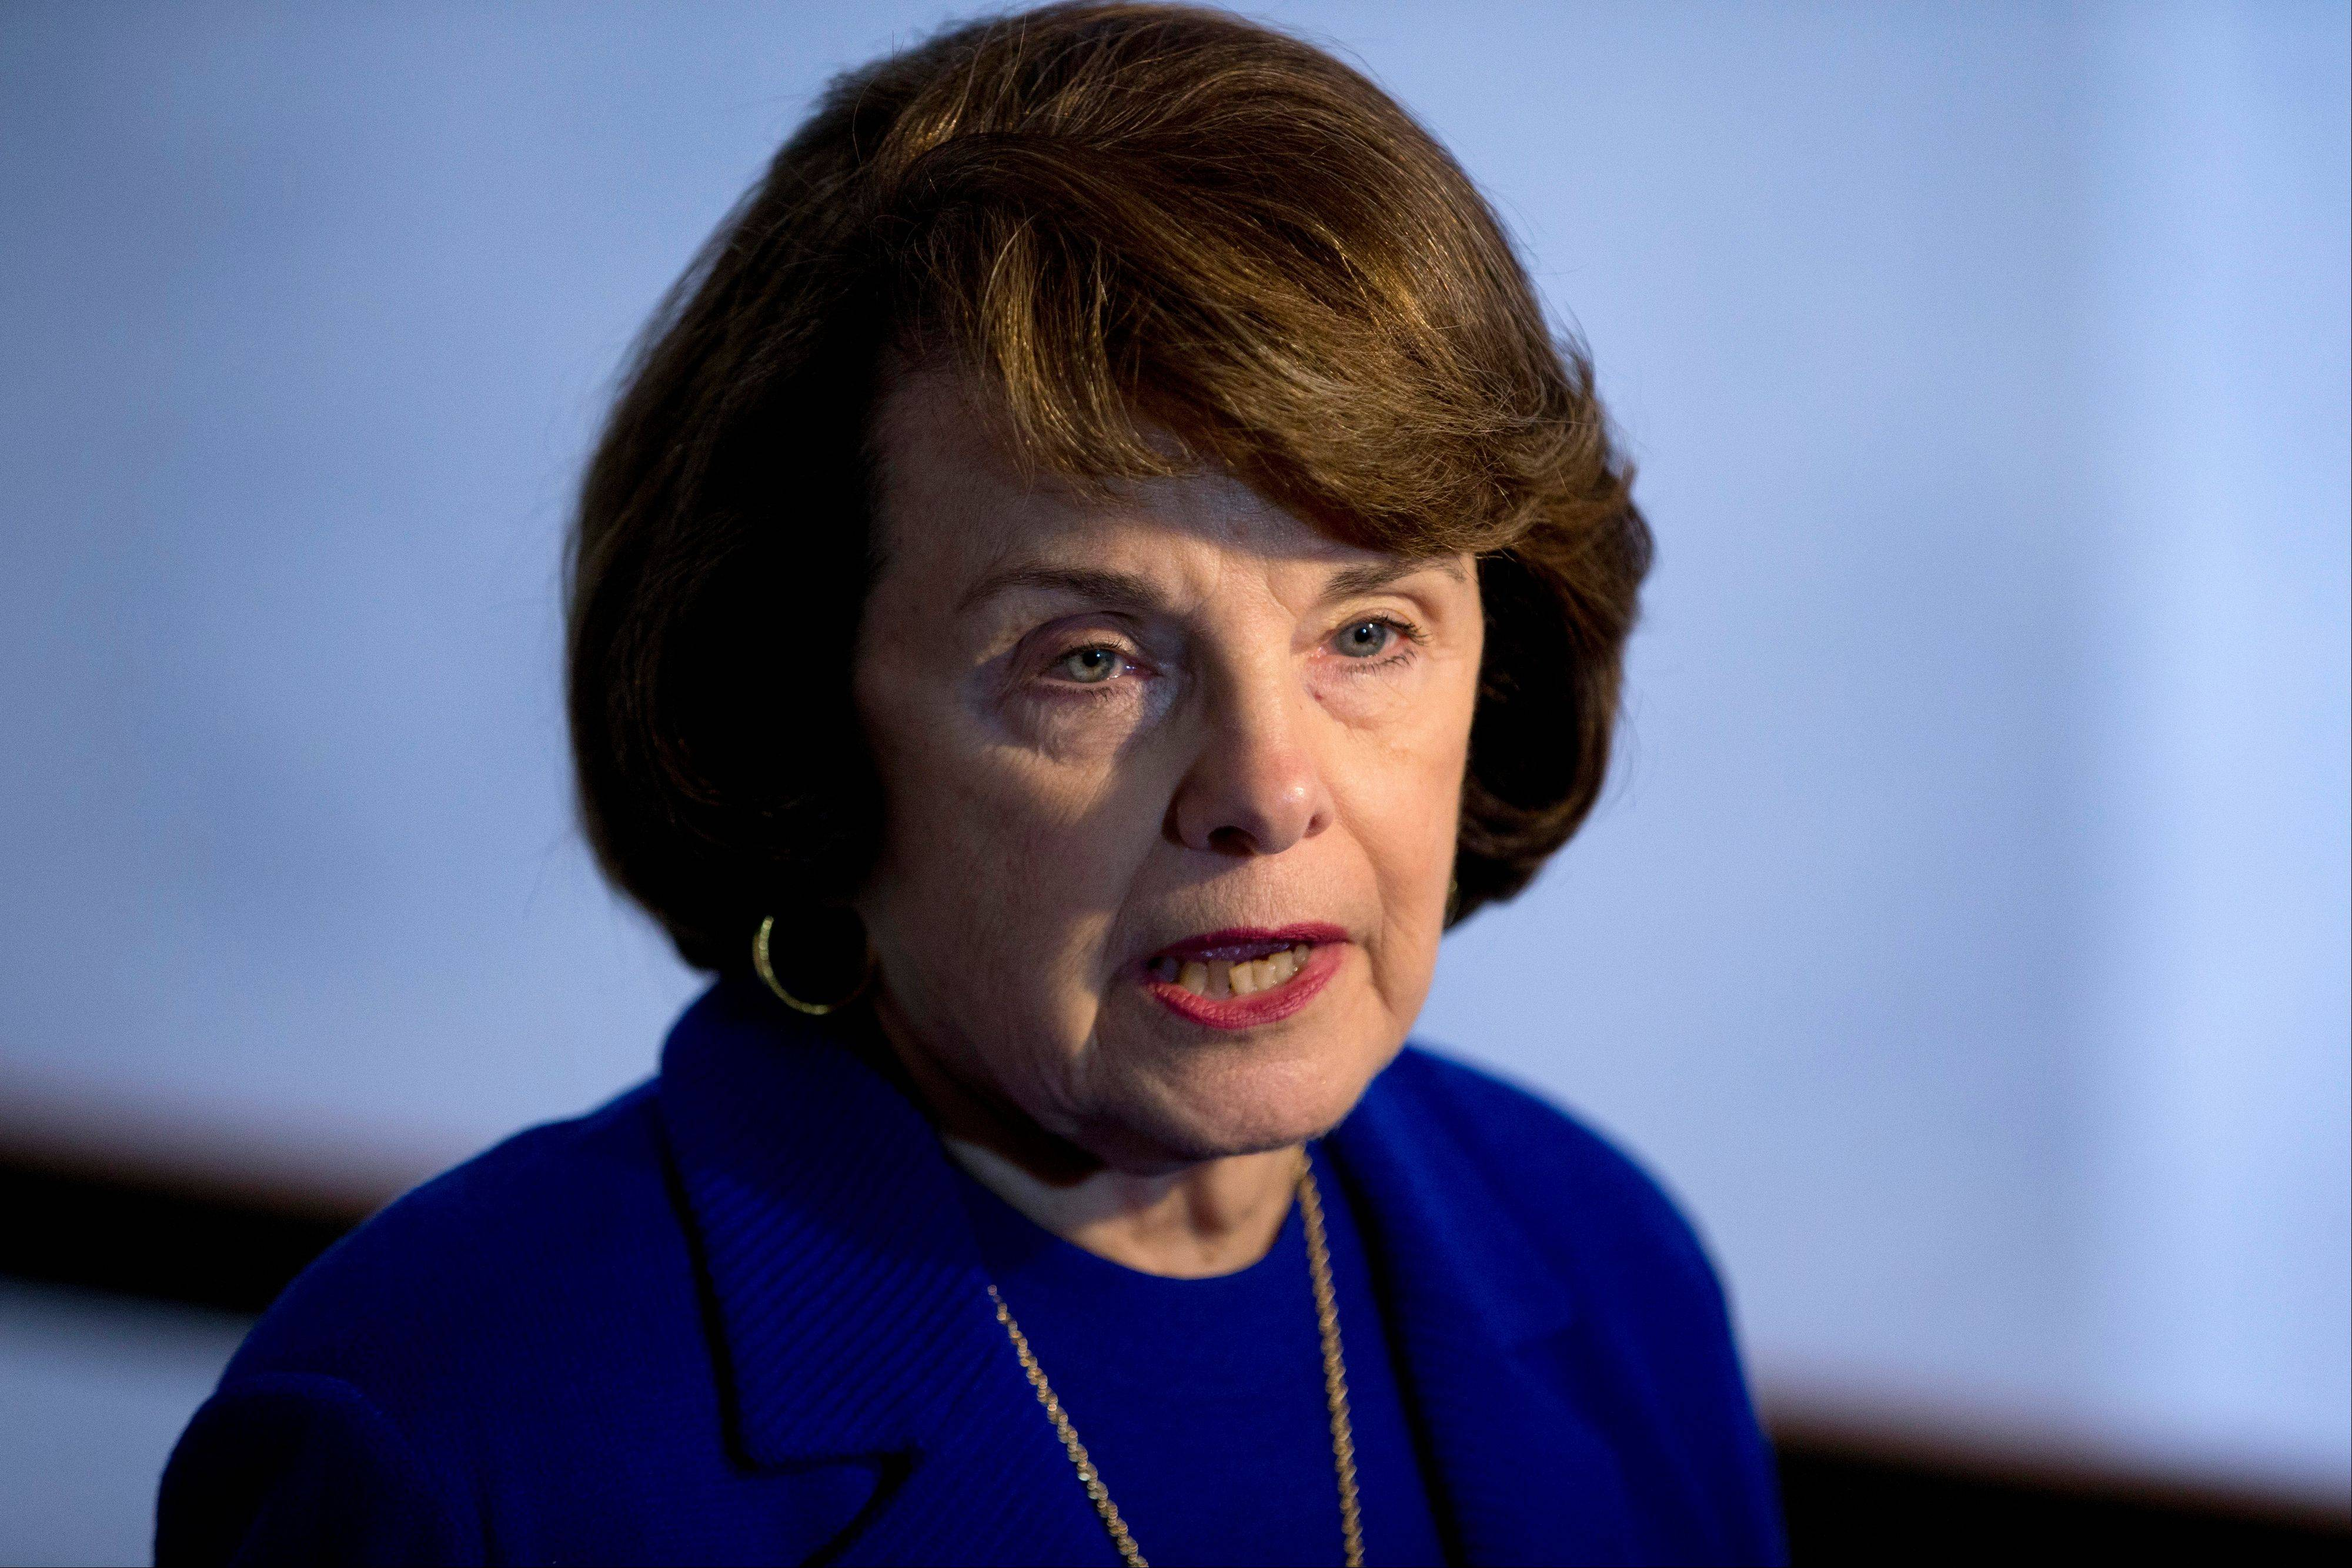 Senate Intelligence Committee Chair Sen. Dianne Feinstein on Wednesday called for swift approval of John Brennan's nomination to become CIA director.